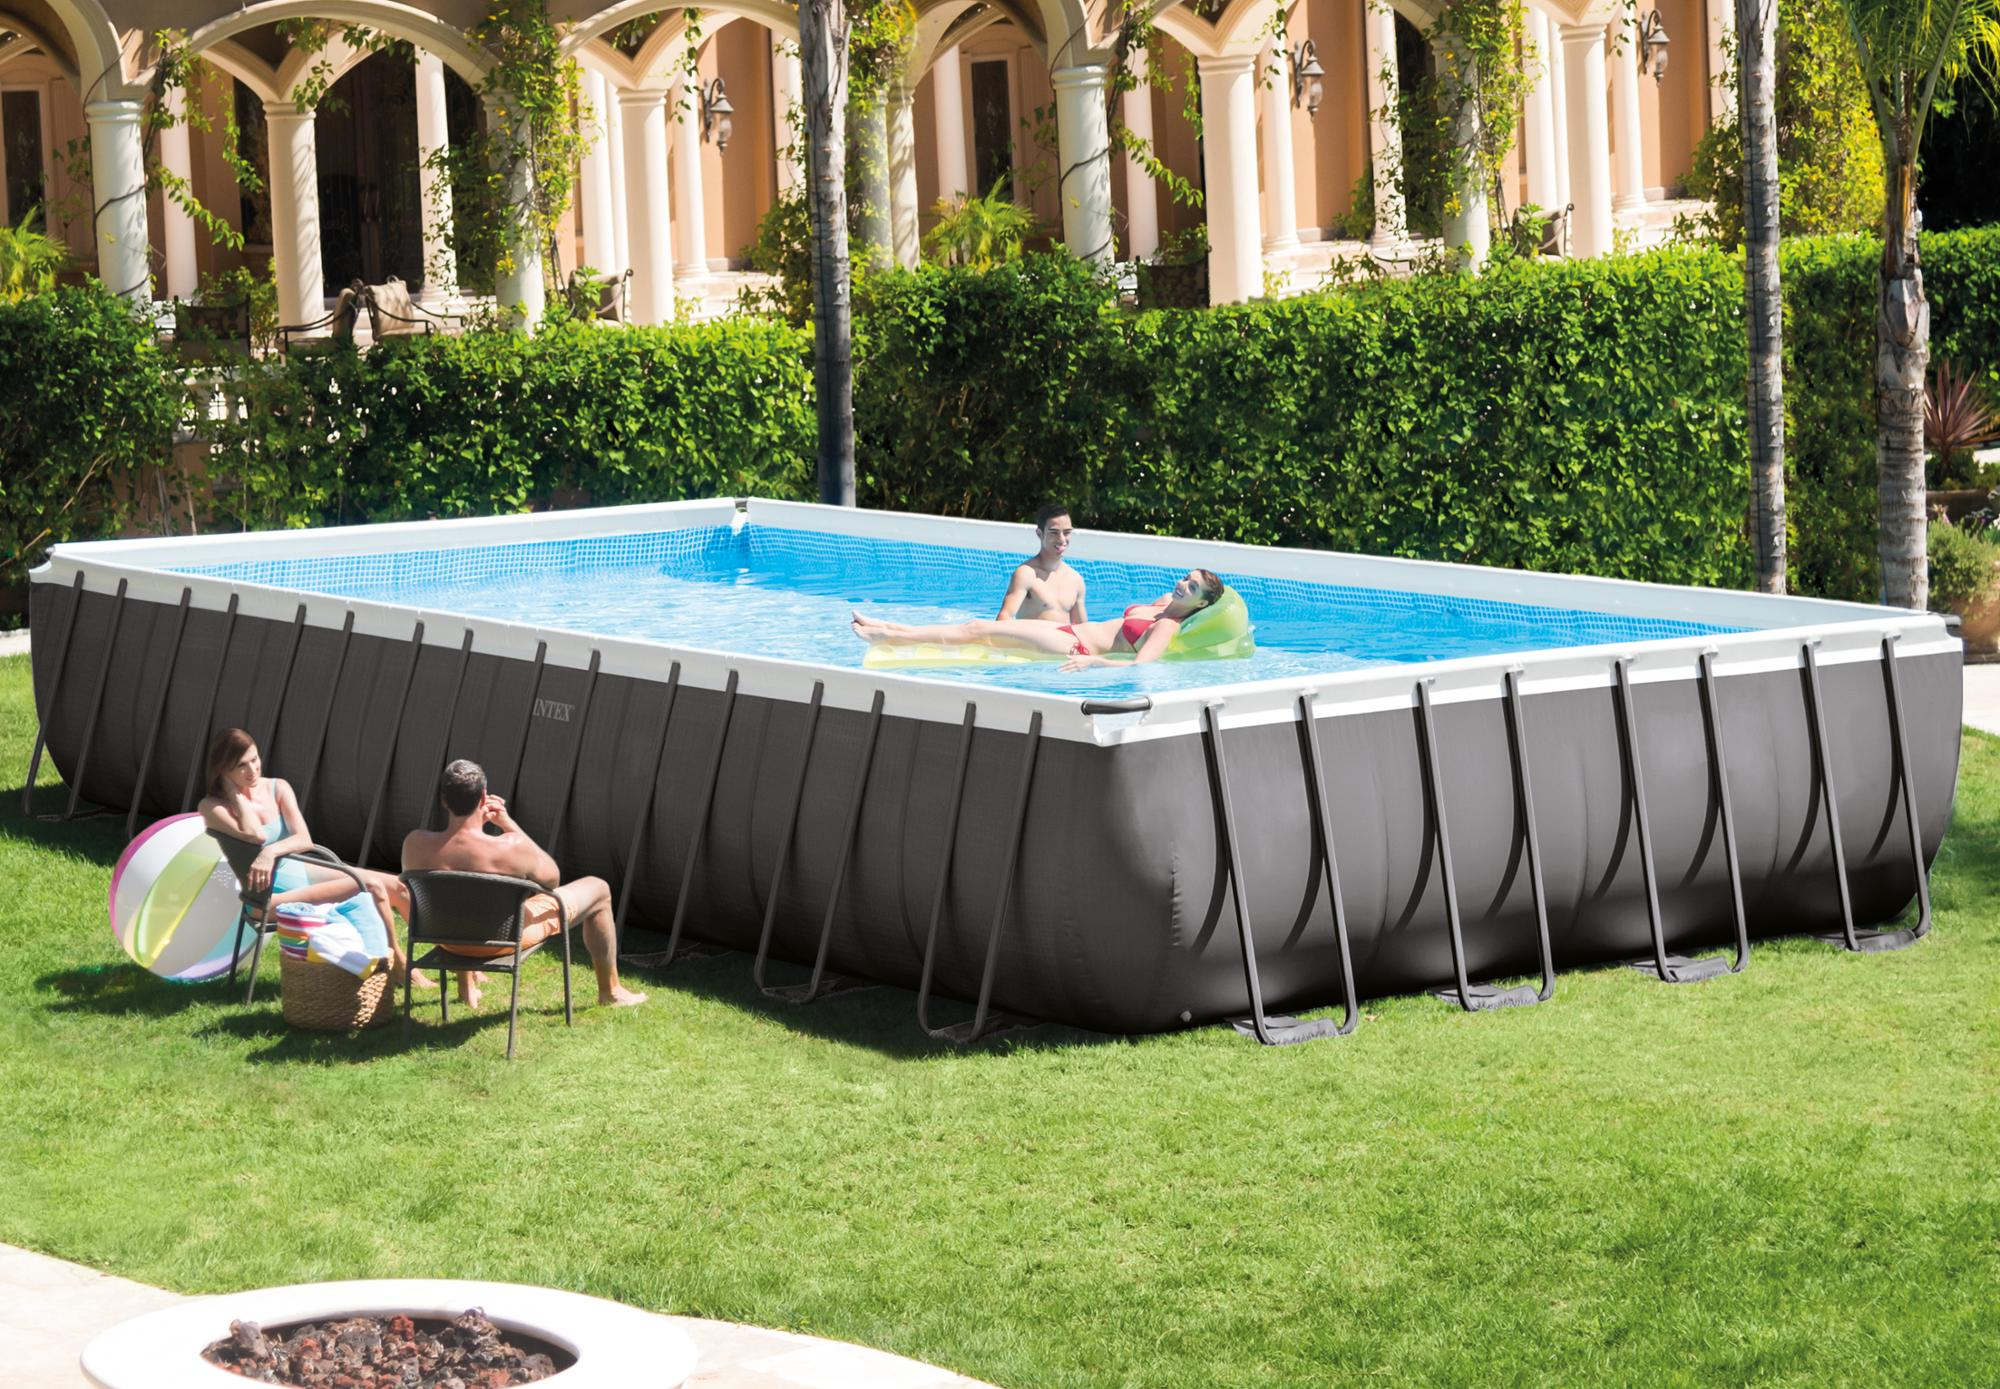 INTEX 28110 8FT X 30IN Inflatable Above Ground Easy Set Family Swimming Pool